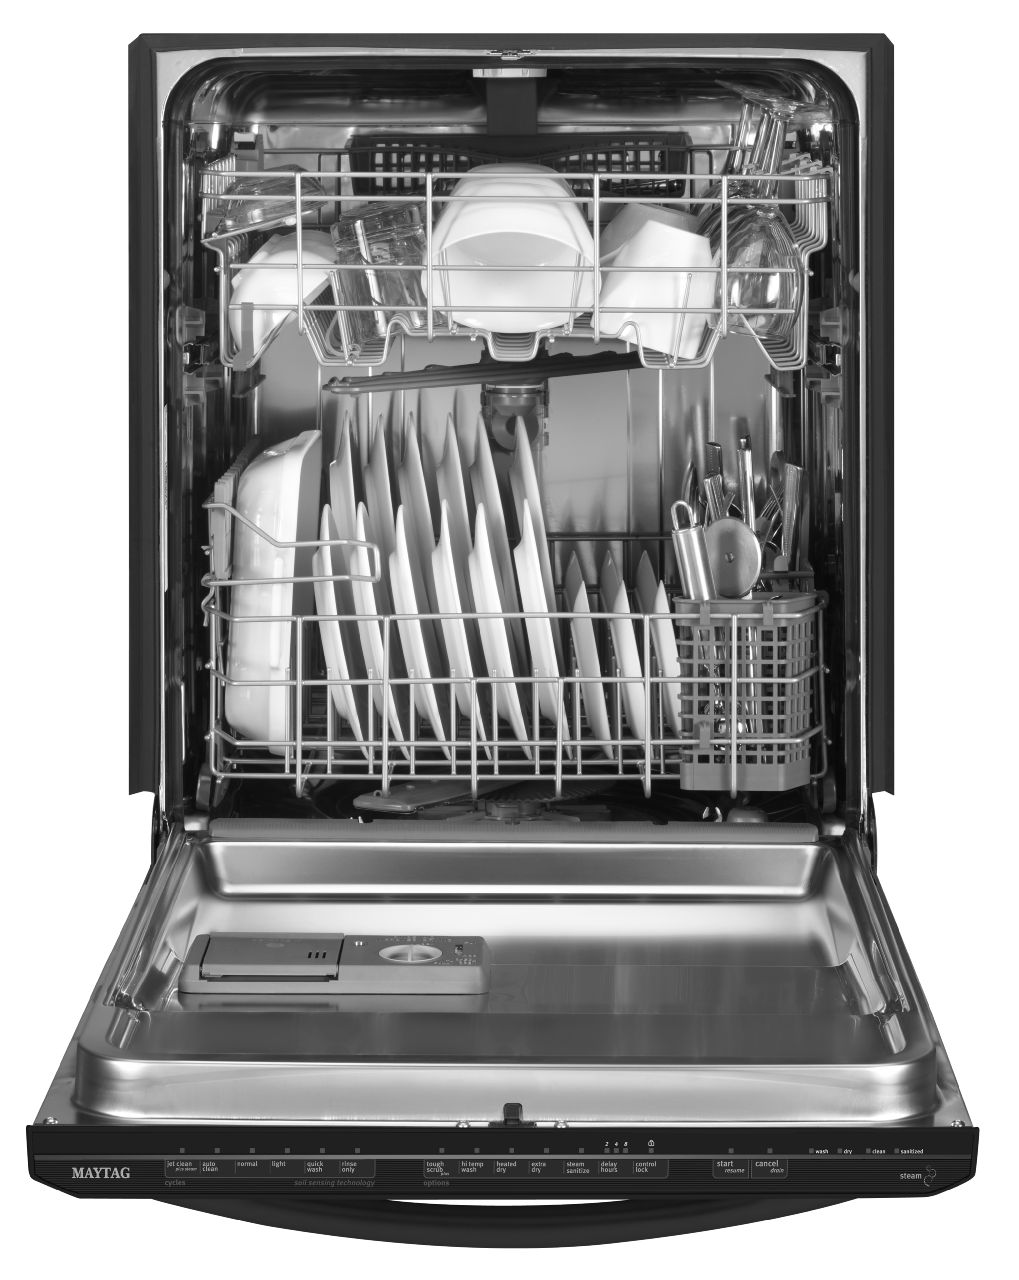 "Maytag 24"" Jetclean® Plus Built-In Dishwasher w/ Premium Rack Glides - White"